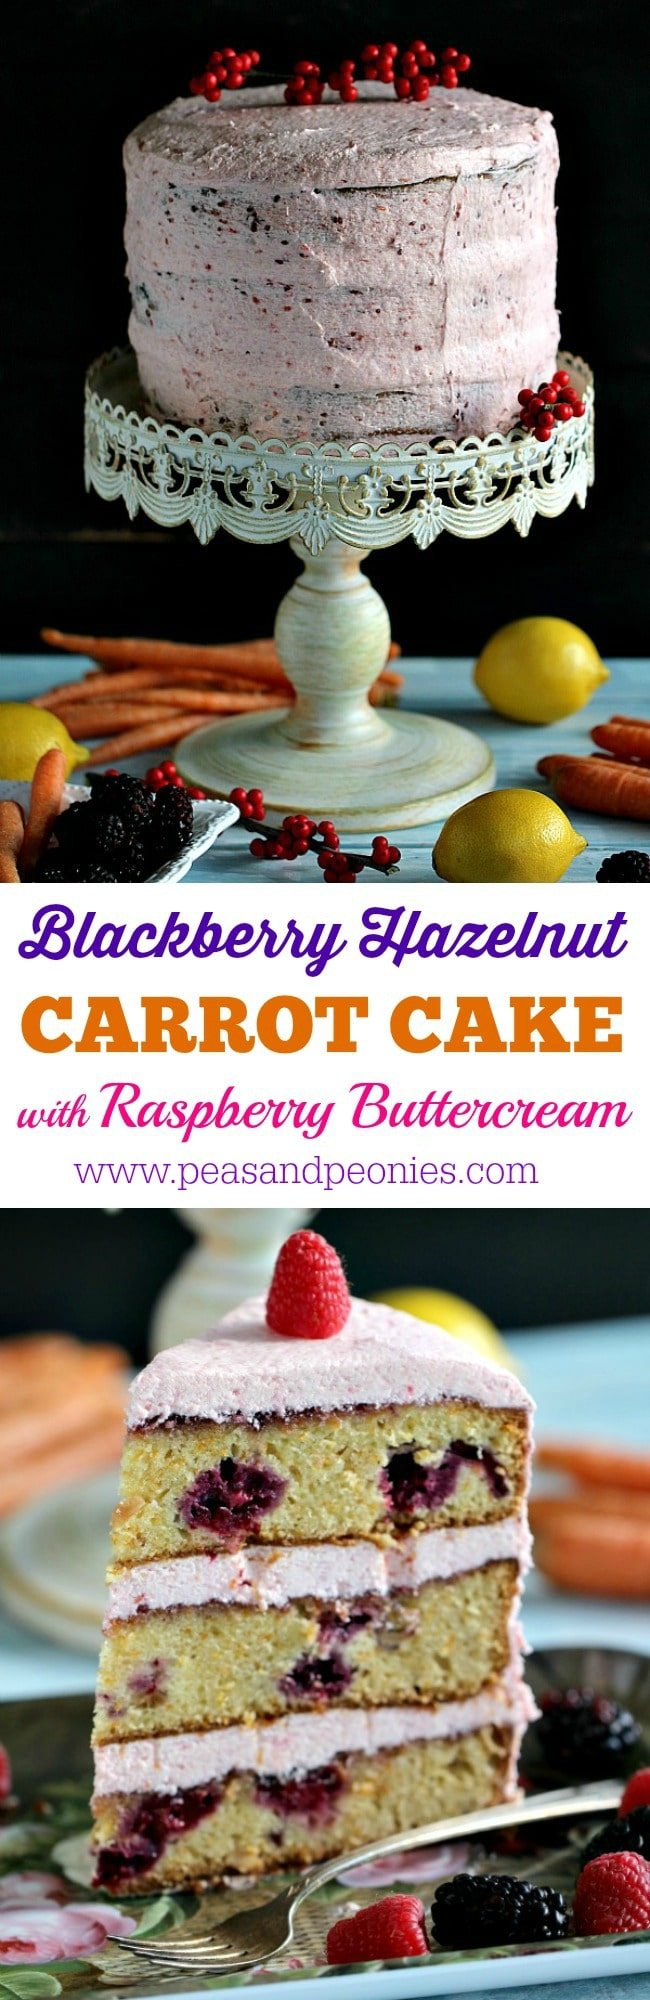 Berry Carrot Cake PIN